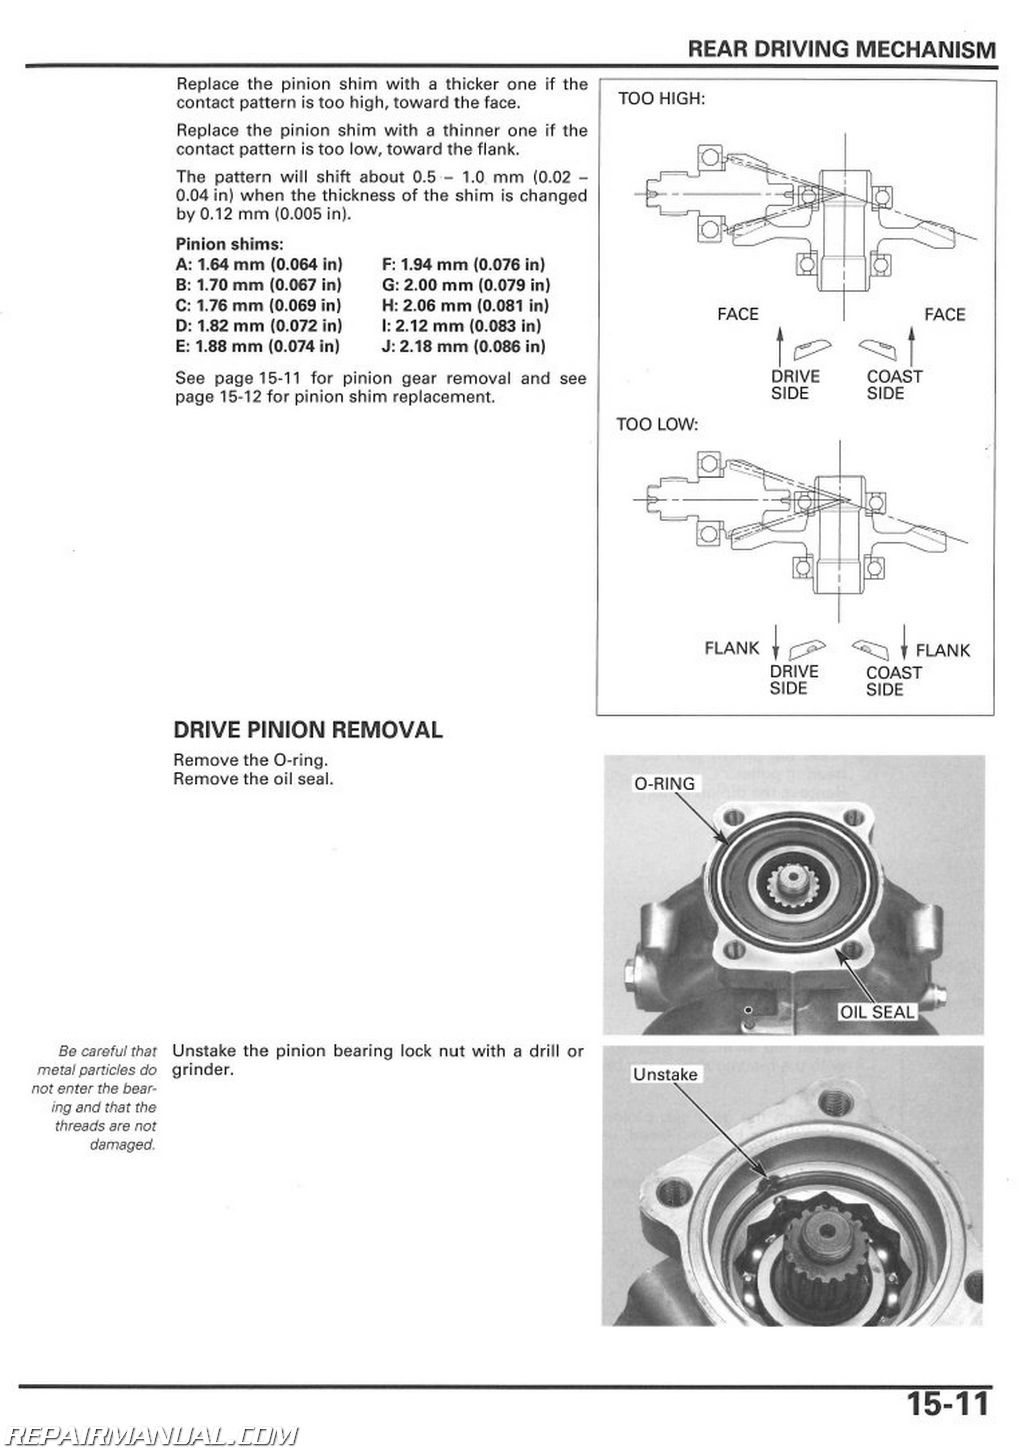 Honda 300 Foreman Engine Diagram Get Free Image About Wiring Diagram